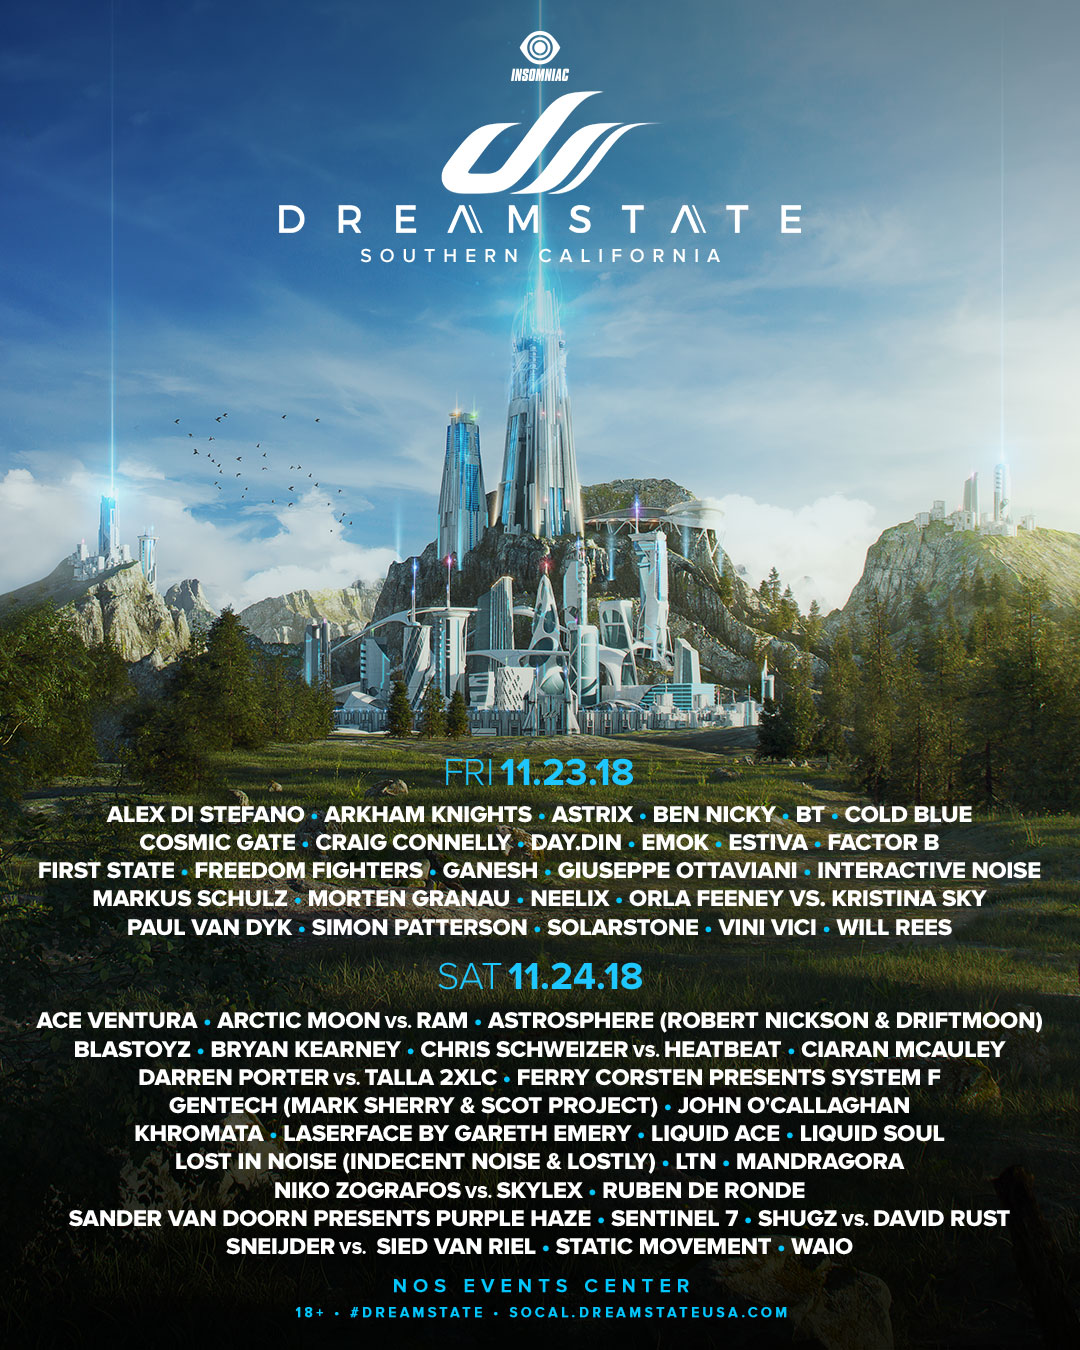 dreamstate_socal_2018_lu_lineup_by_day_1080-compressed.jpg